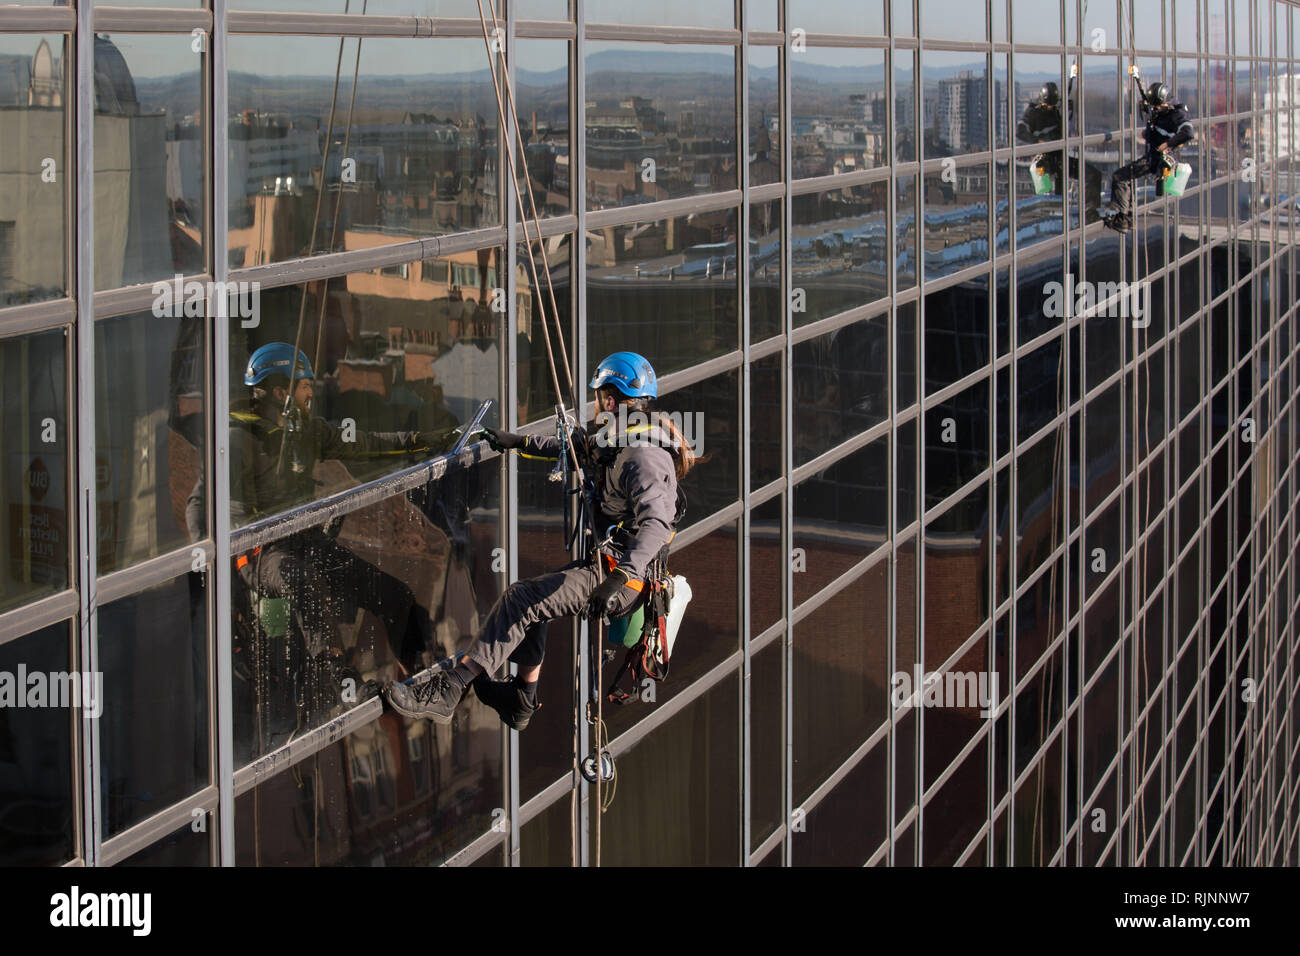 Abseiling Window Cleaners. Cleaning Windows at The Crowne Plaza in Nottingham City Centre Stock Photo